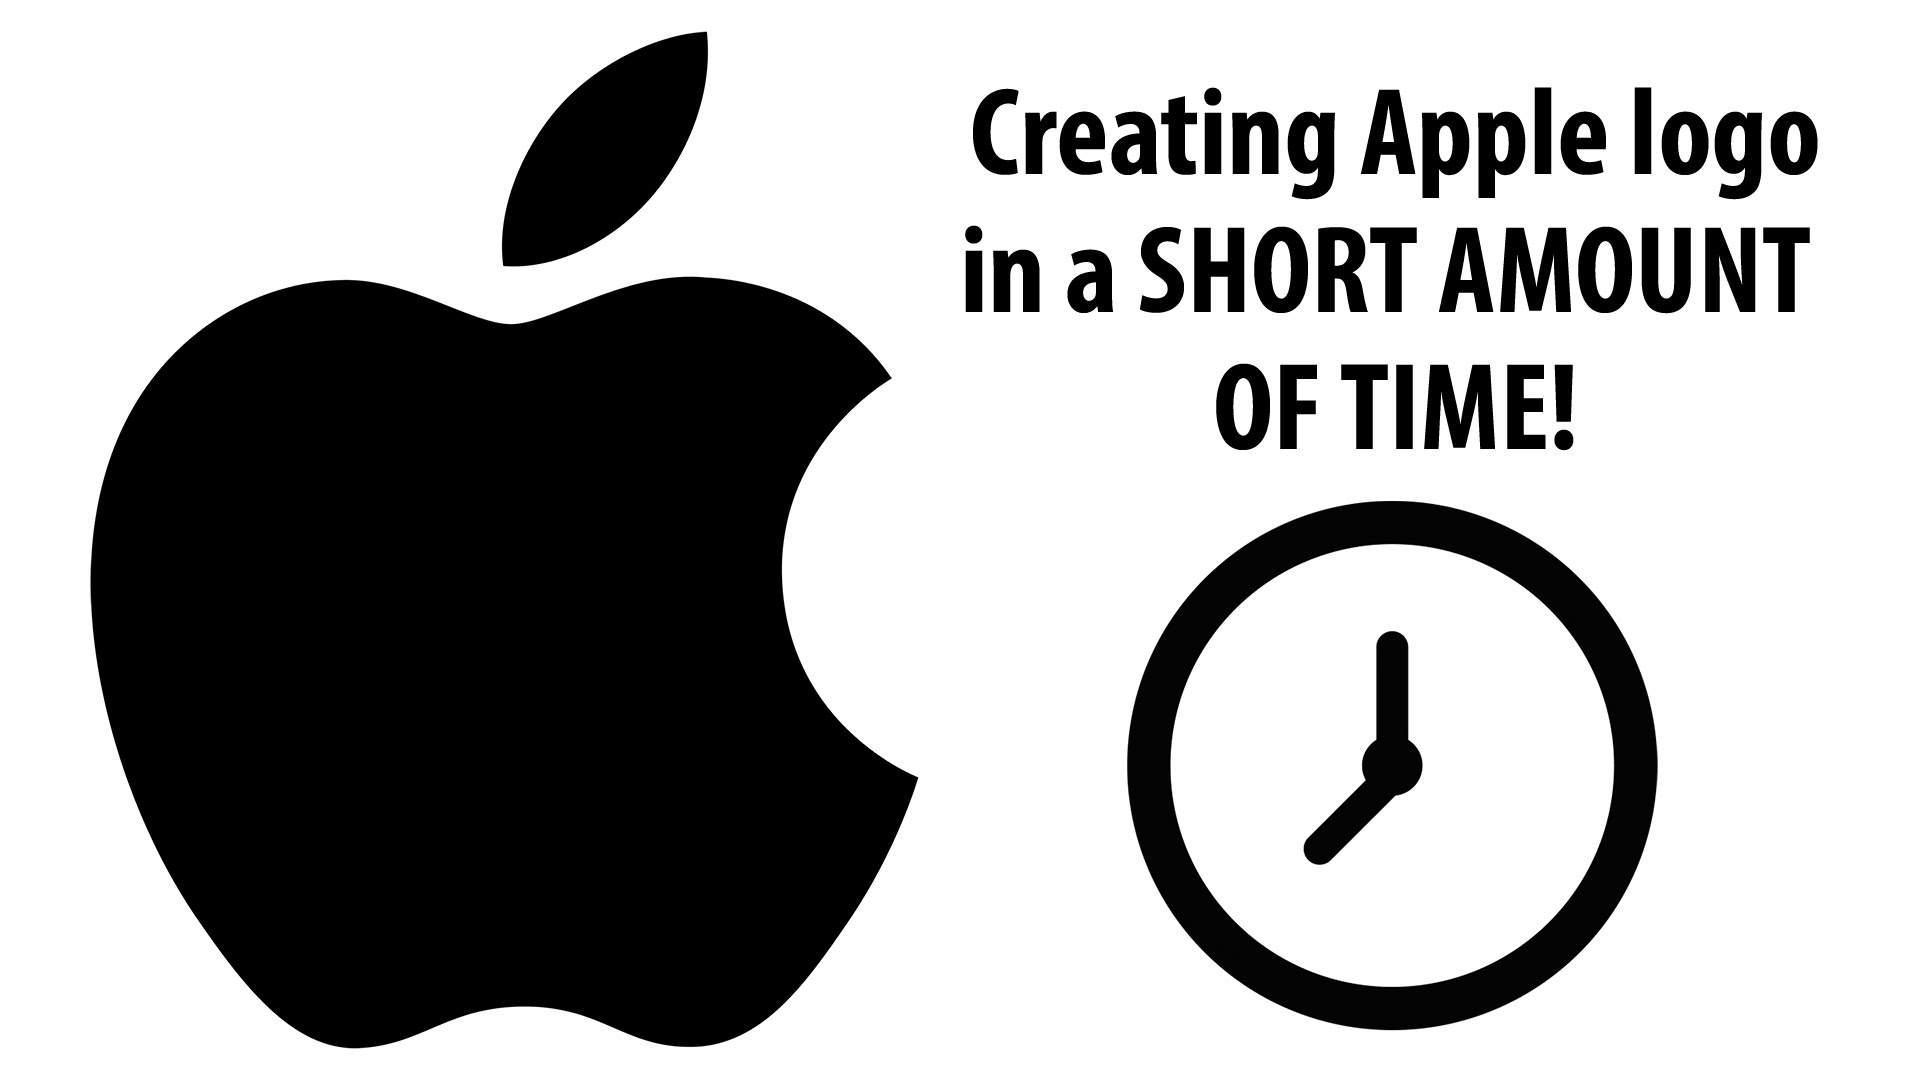 Creating the Apple Logo in a short amount of time.